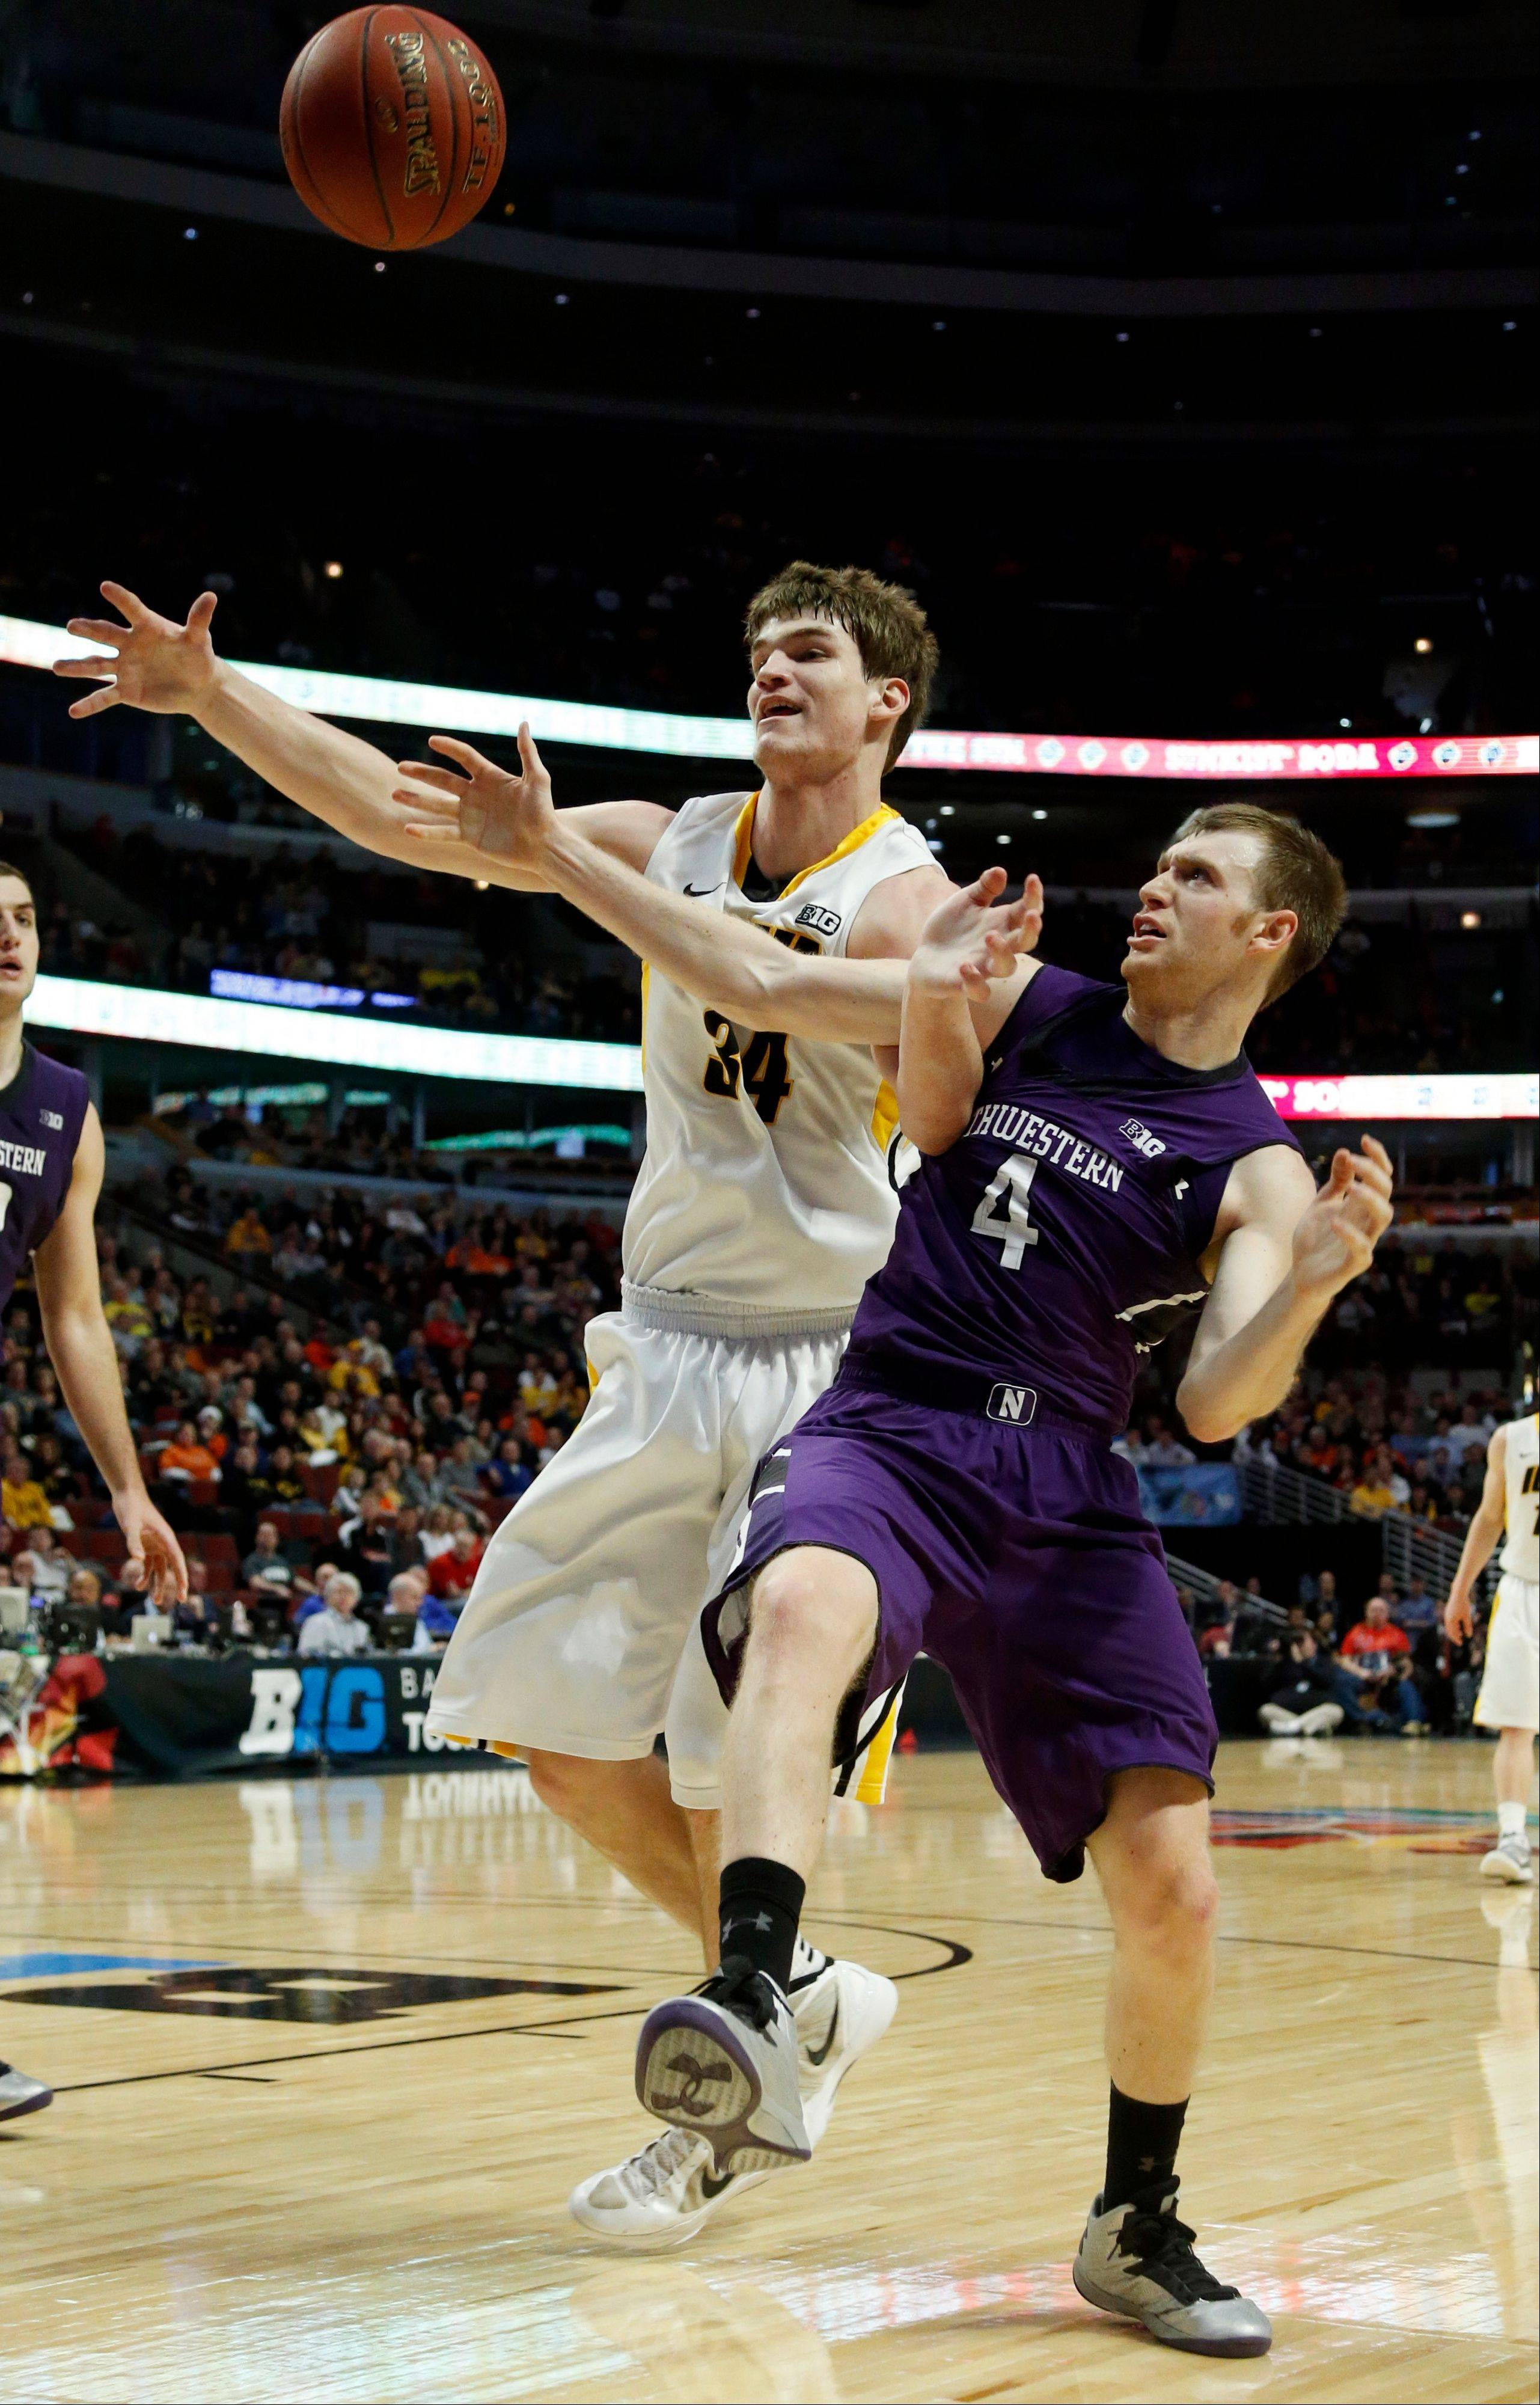 Iowa's Adam Woodbury (34) and Northwestern's Alex Marcotullio (4) battle for a loose ball during the first half of an NCAA college basketball game at the Big Ten tournament Thursday, March 14, 2013, in Chicago.